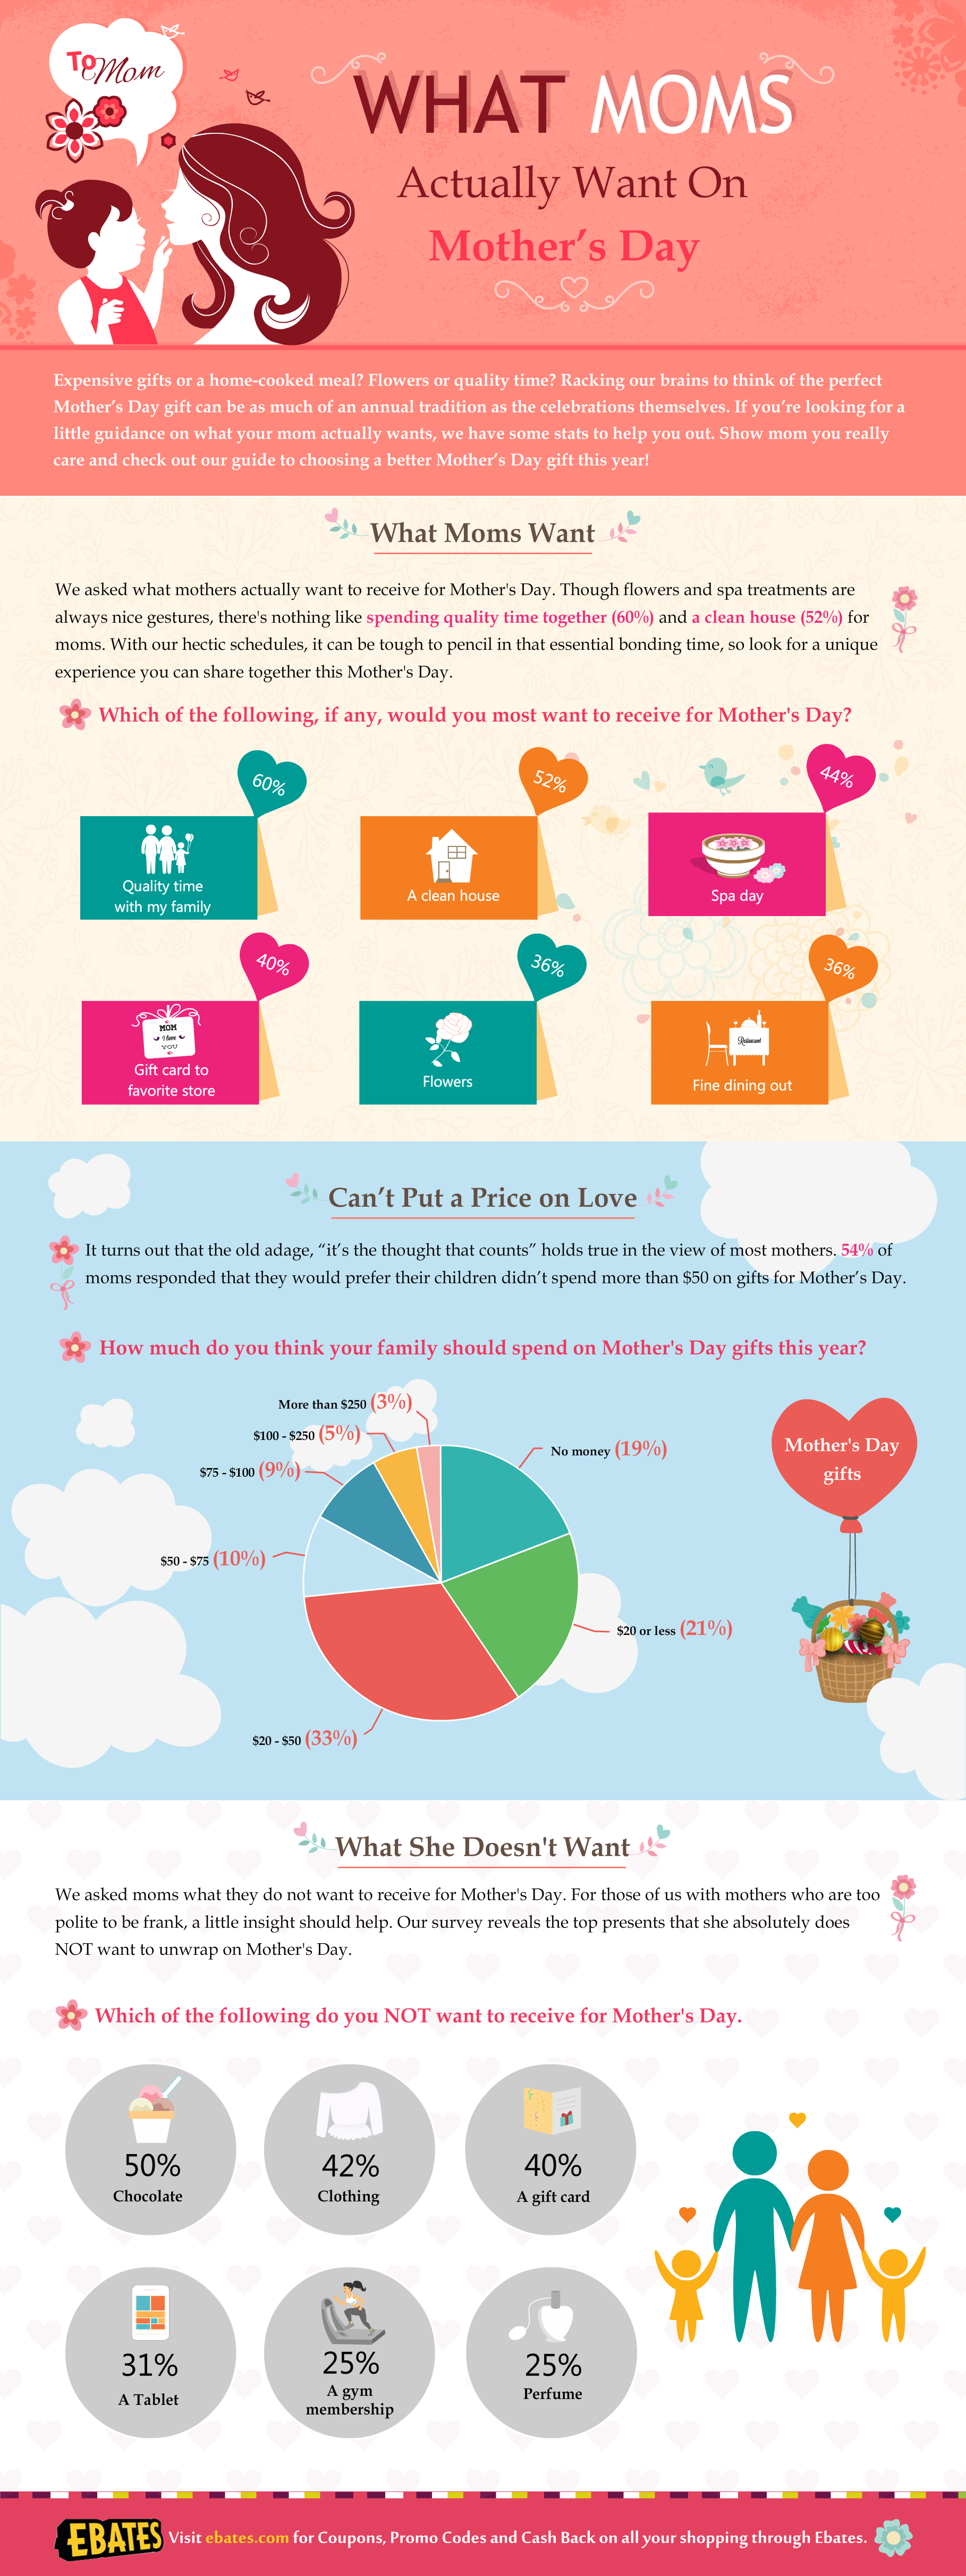 Ebates Mother's Day Gifts Infographic